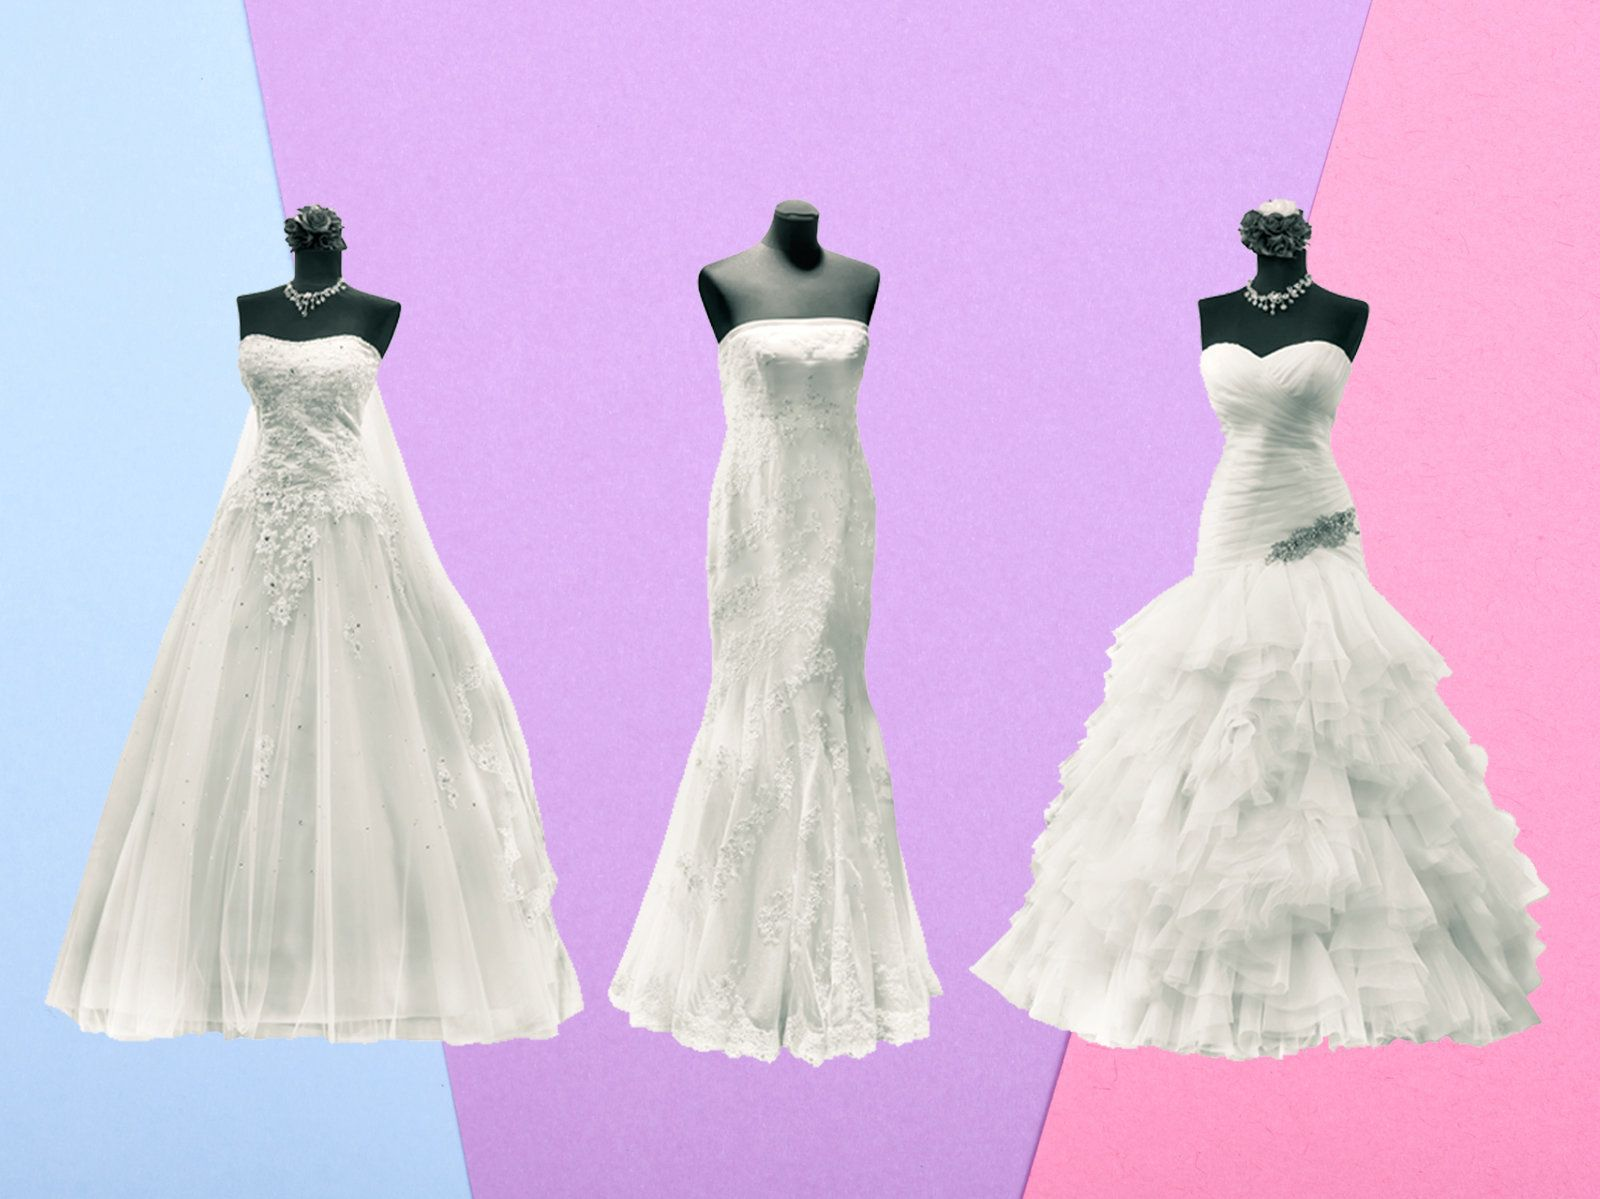 Not The Royal Wedding: Buying 'The Dress' Doesn't Always Go As You'd